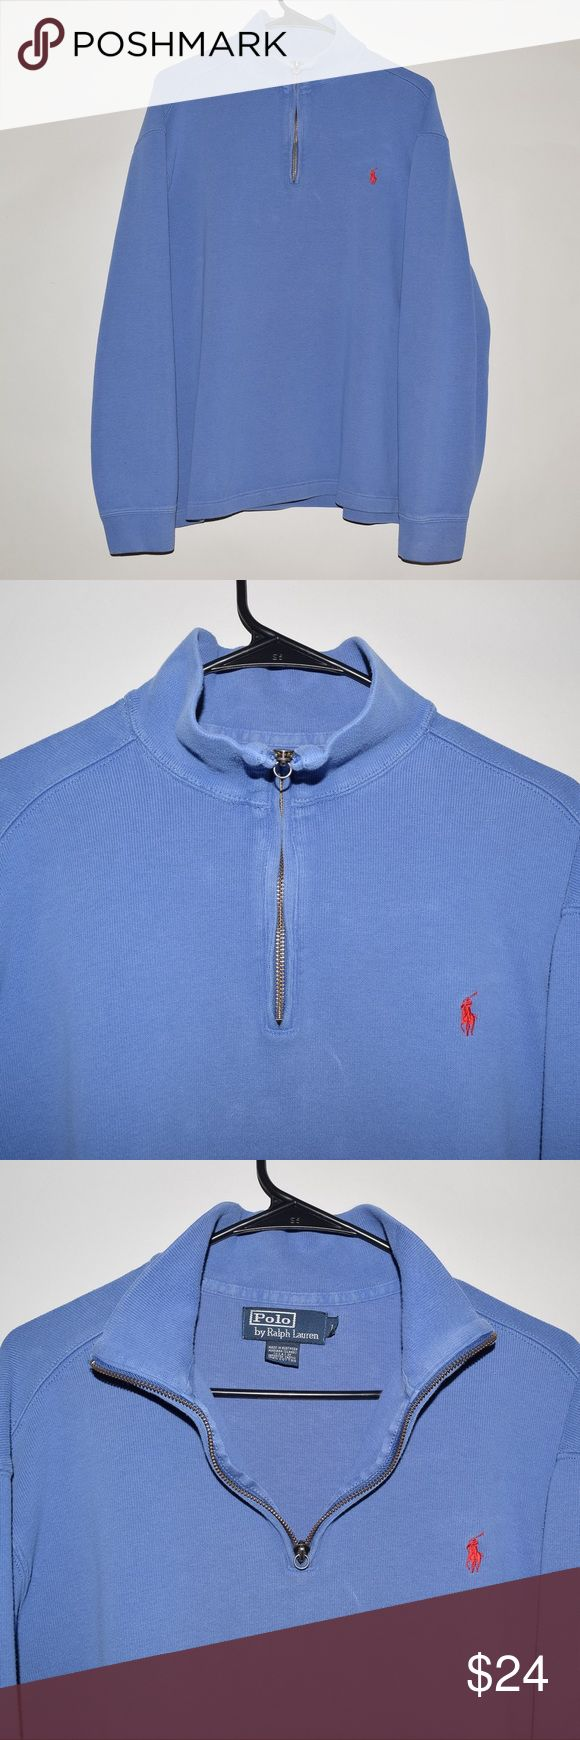 Rare Polo Ralph Lauren Pony Men's Half Zip Sweater Brand: Polo Ralph Lauren Item name: Pony Half Zip Sweater Color: Light Blue Condition: This is a pre-owned item. It is in excellent condition with no holes, rips, etc. Comes from a smoke free household. Size: Large Measurements:  Pit to Pit - 25 inches Neckline to bottom - 26 inches Polo By Ralph Lauren Sweaters